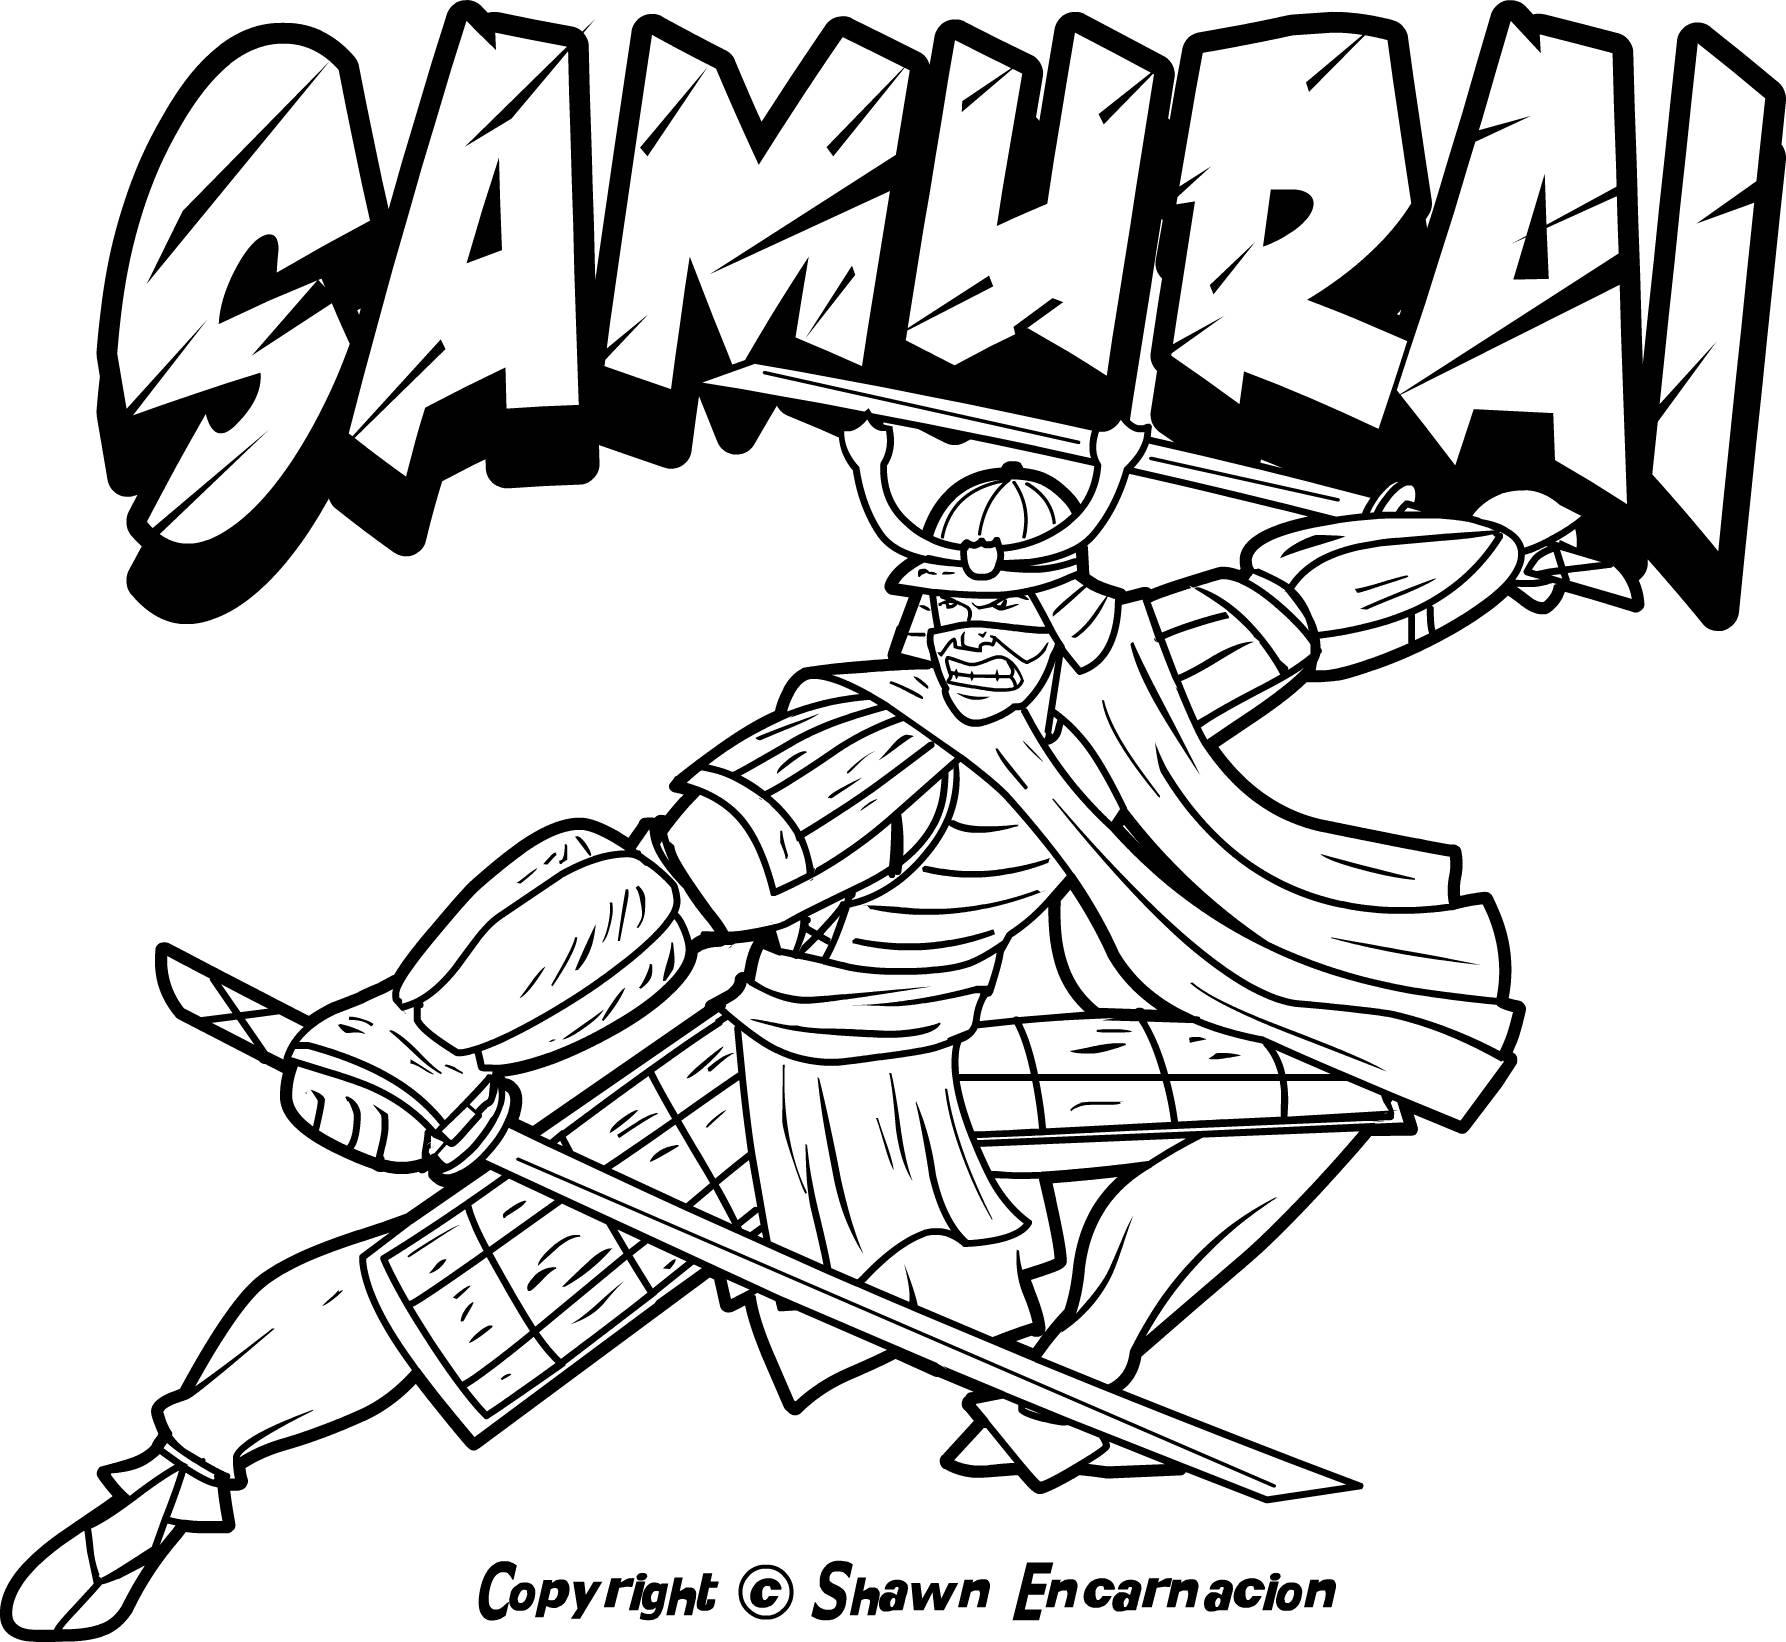 warrior coloring pages for kids | Warrior coloring, Download Warrior coloring for free 2019